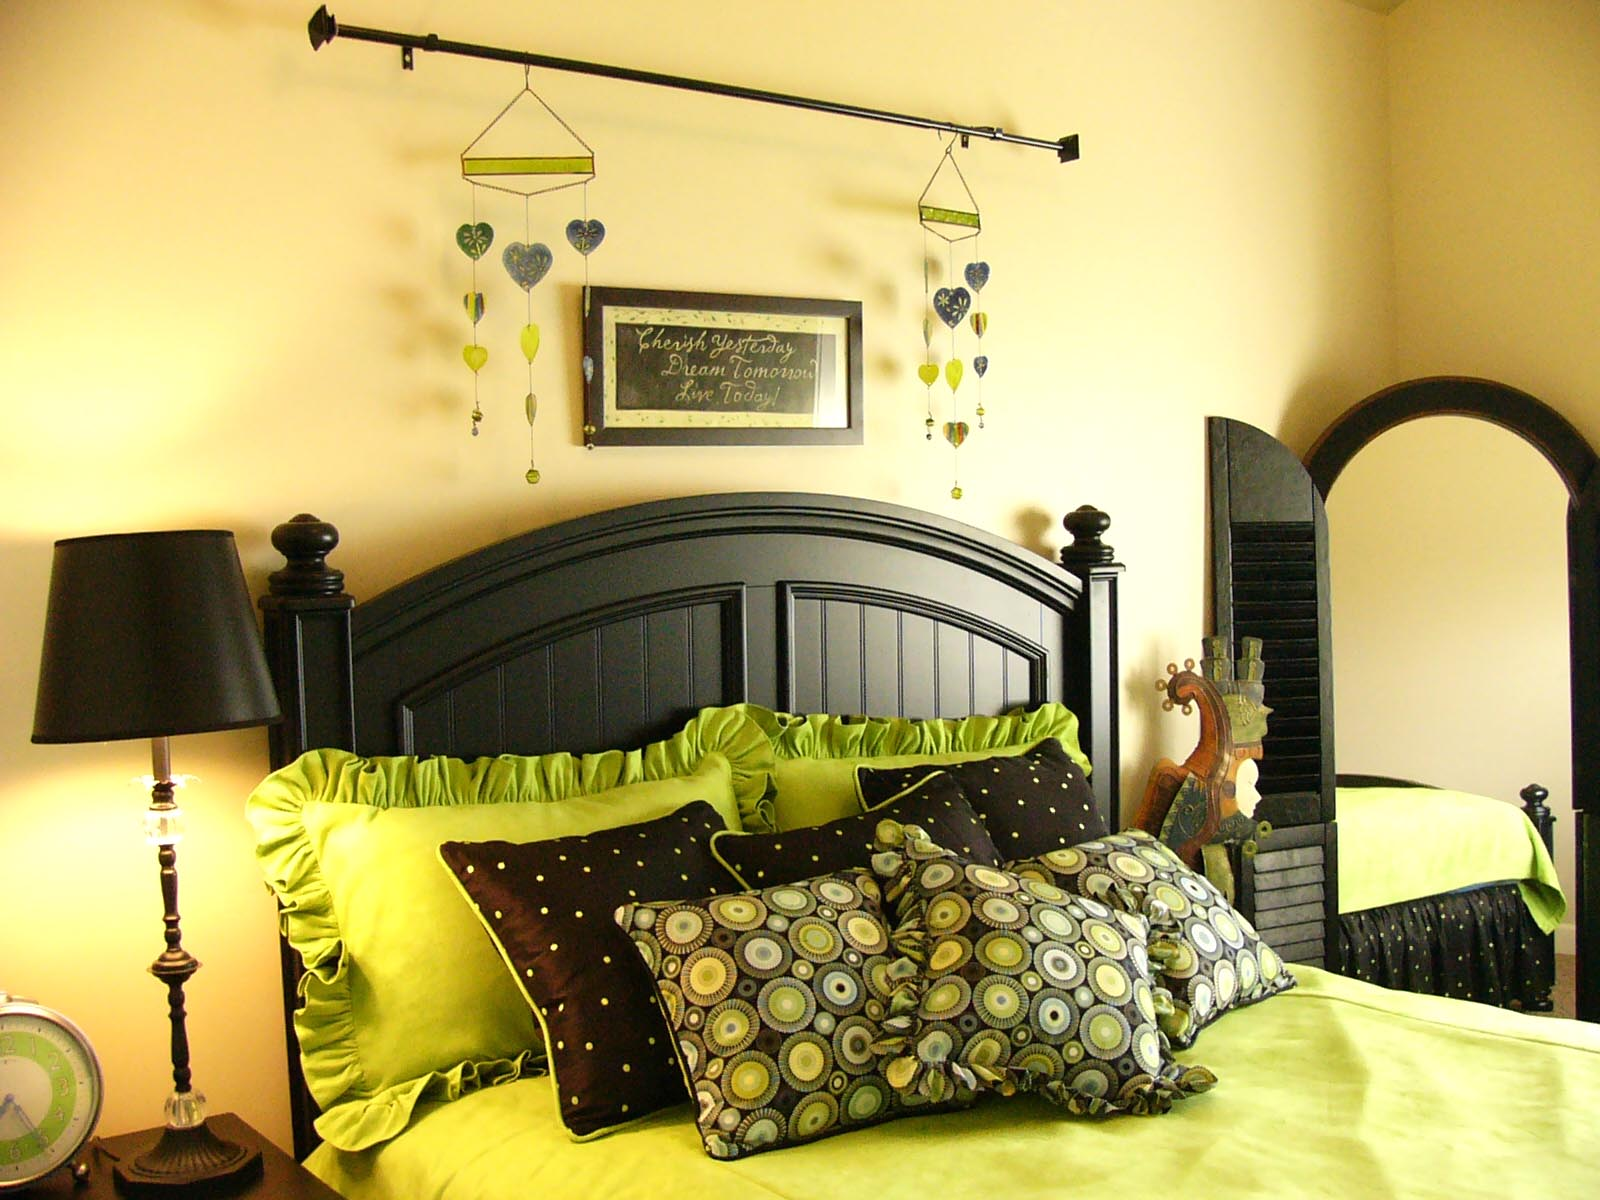 Lost in Words: dEcOrAtInG iDeAs